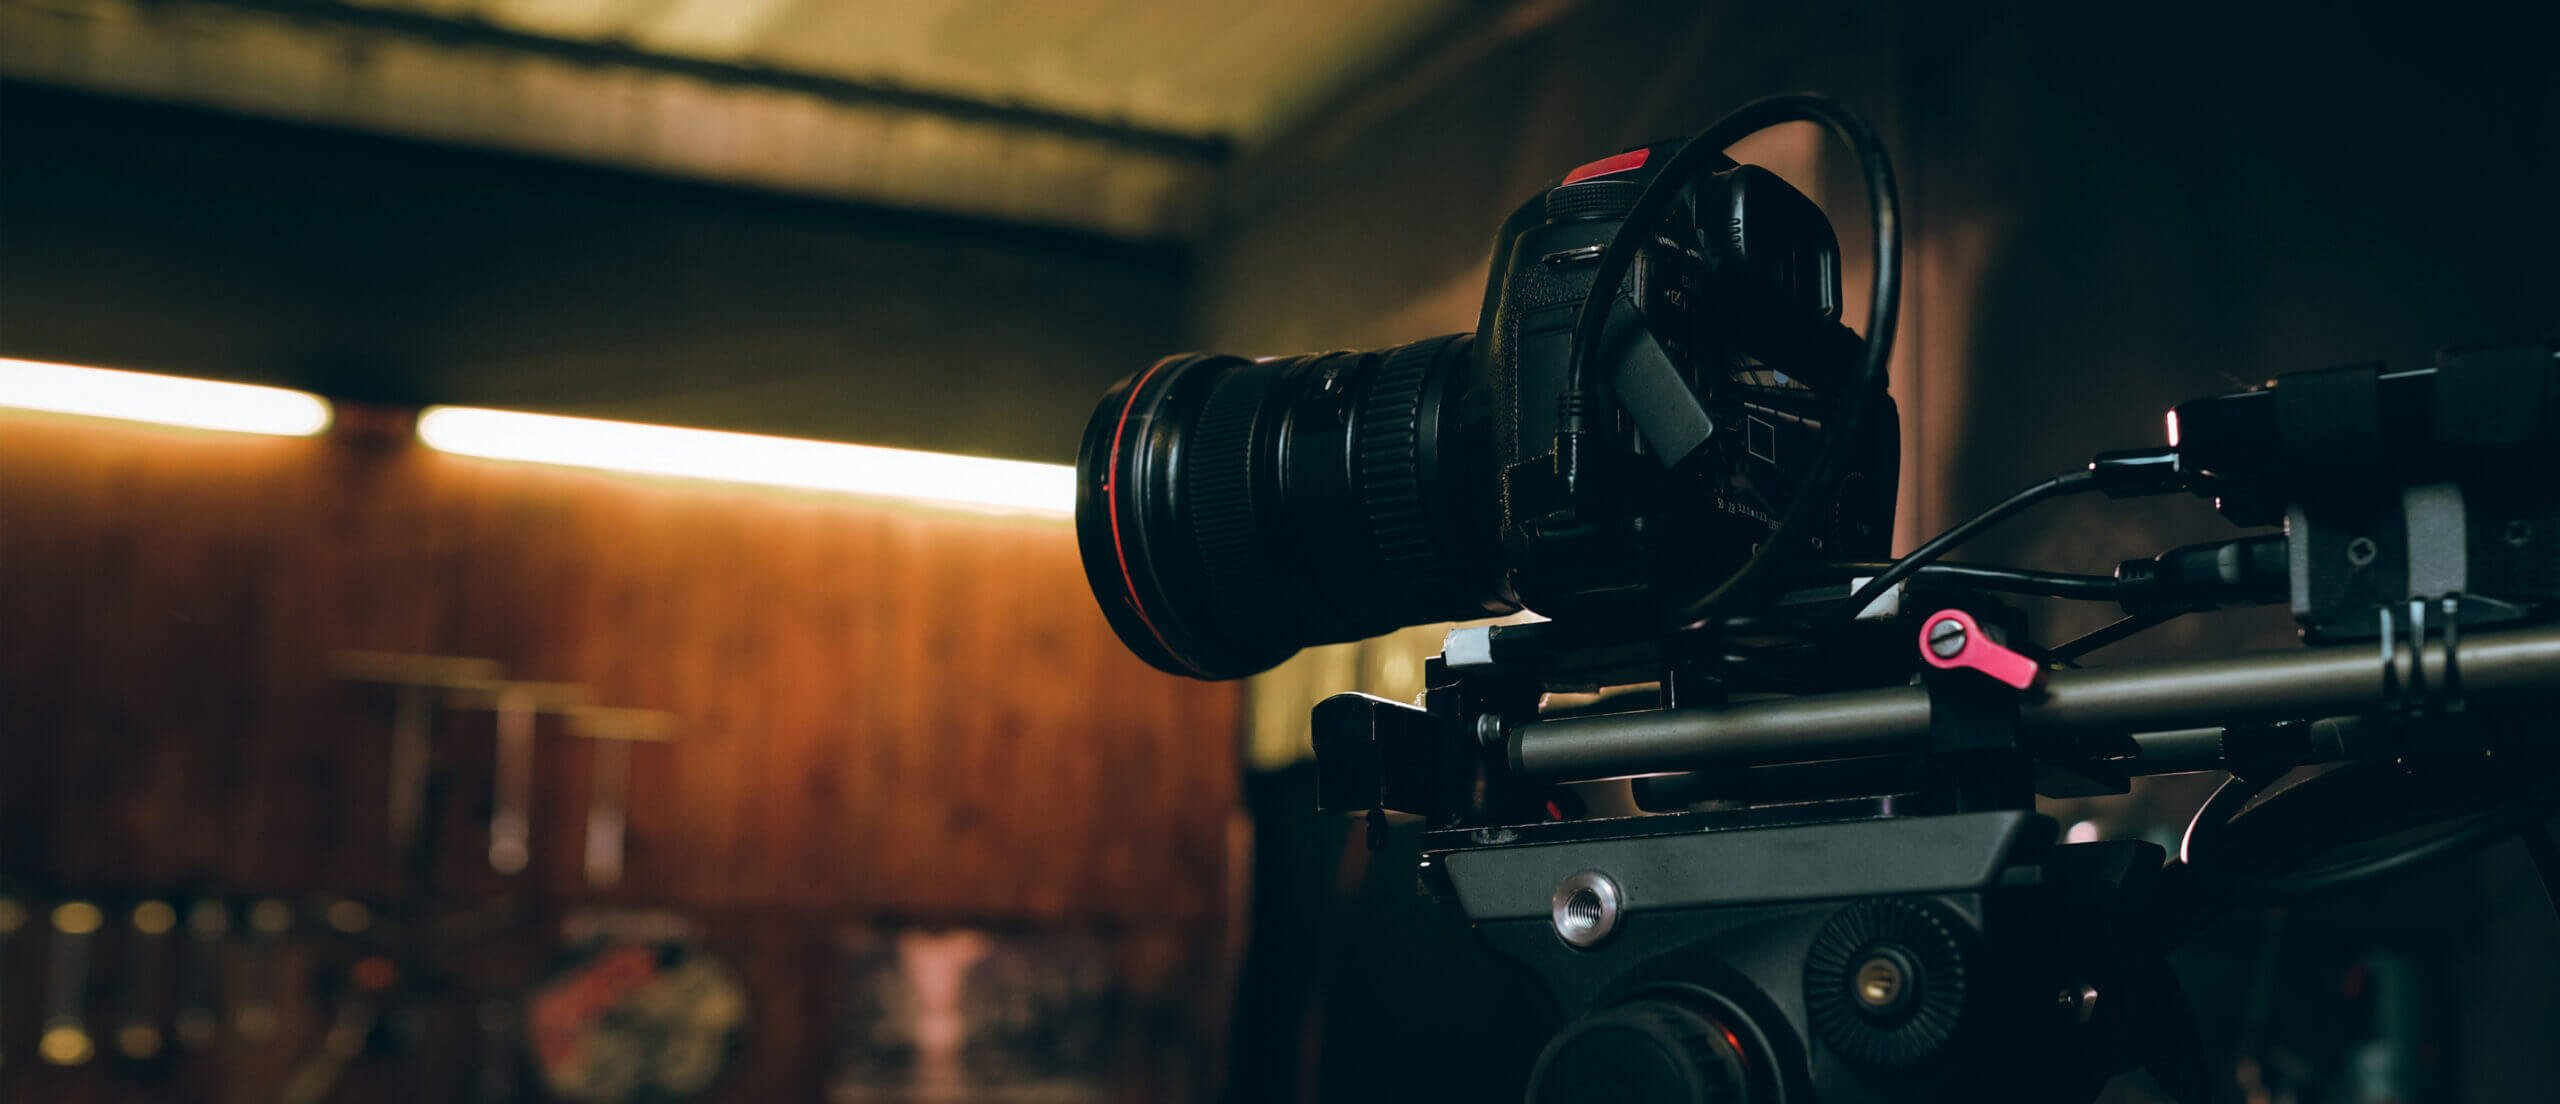 Video content in 2021 - Tips to make video work for your business - Turps Film